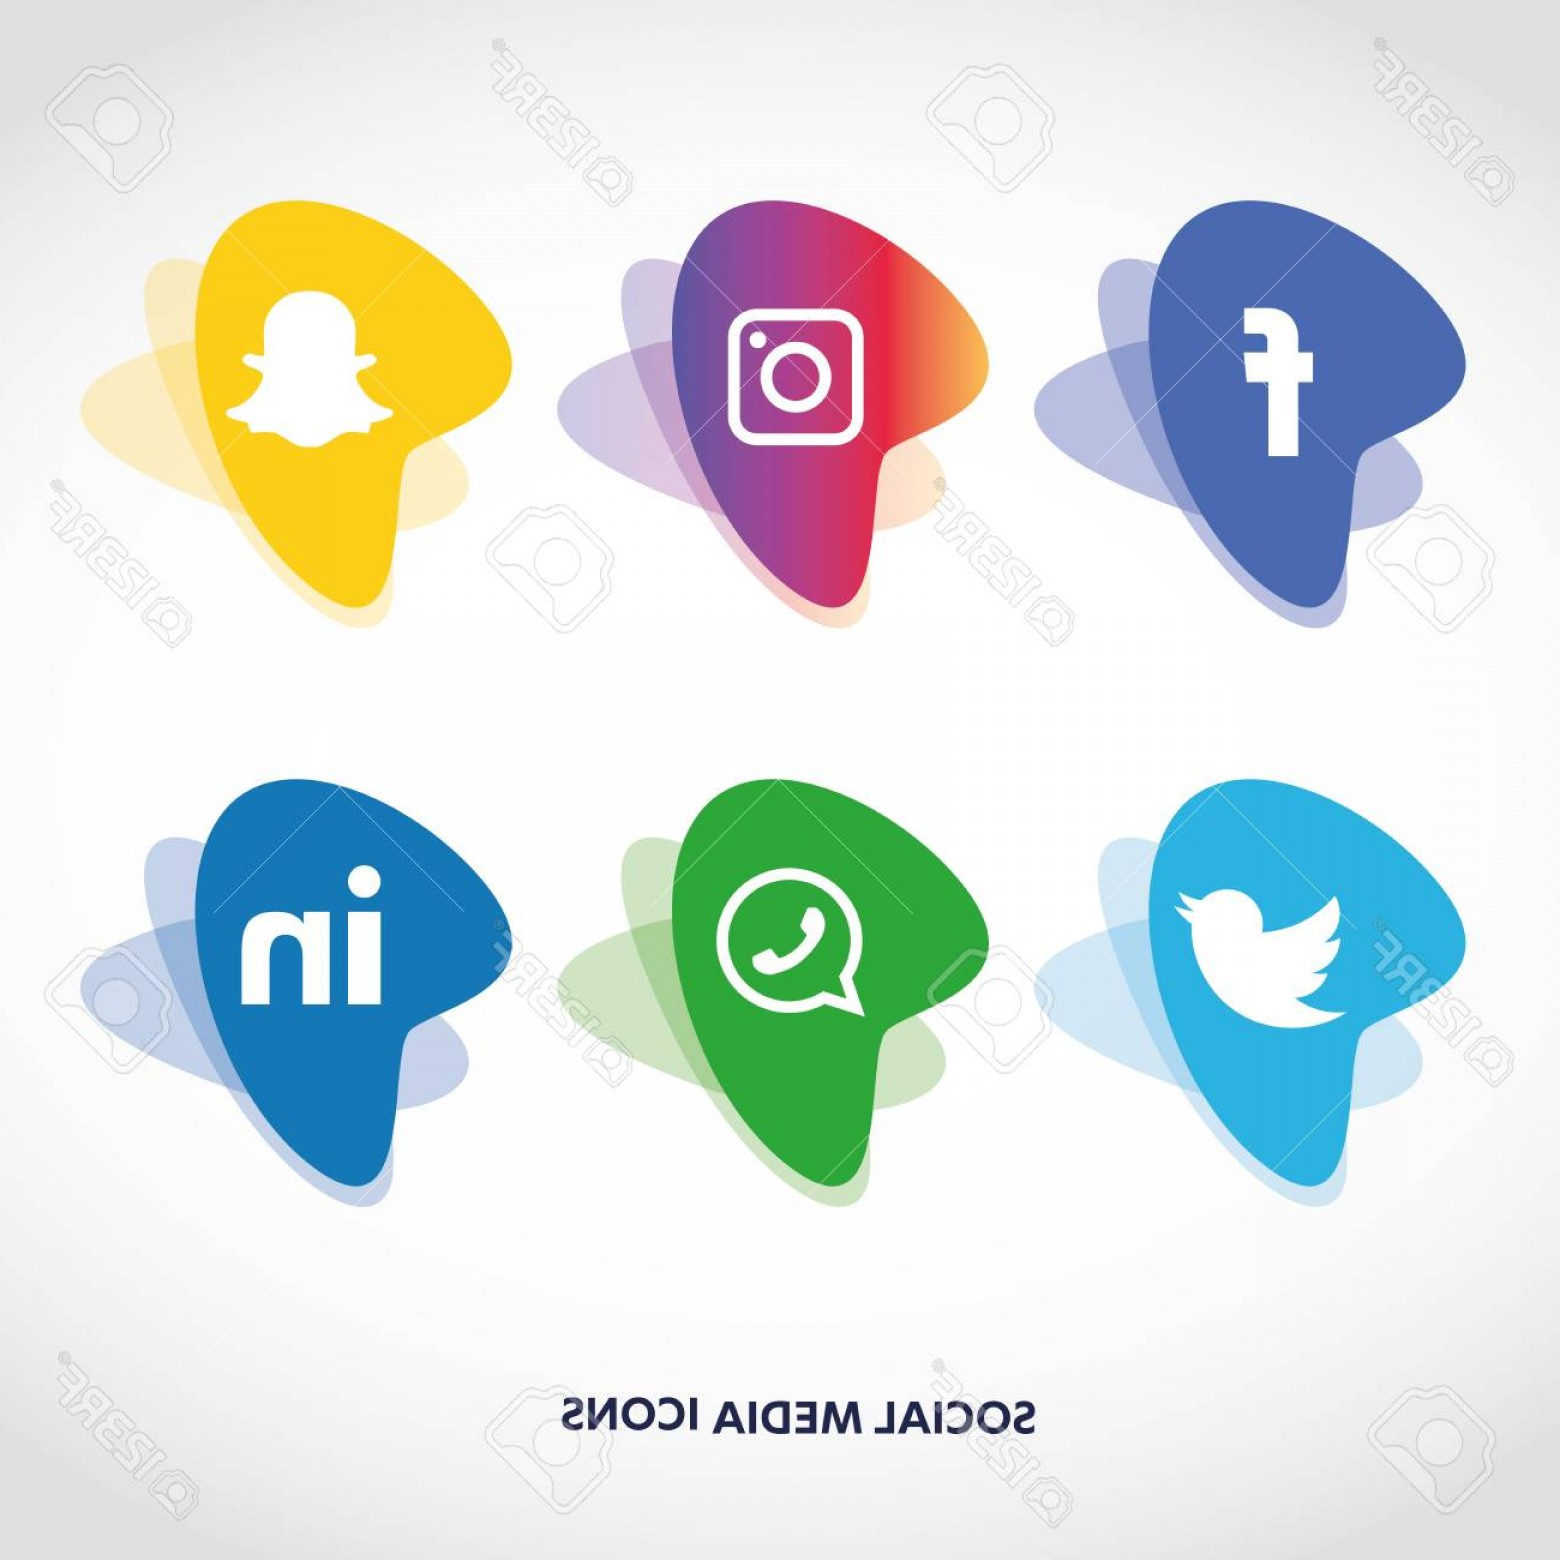 Free Vectors Social Media Facebook: Photostock Vector Social Media Icons Set Facebook Instagram Whatsapp